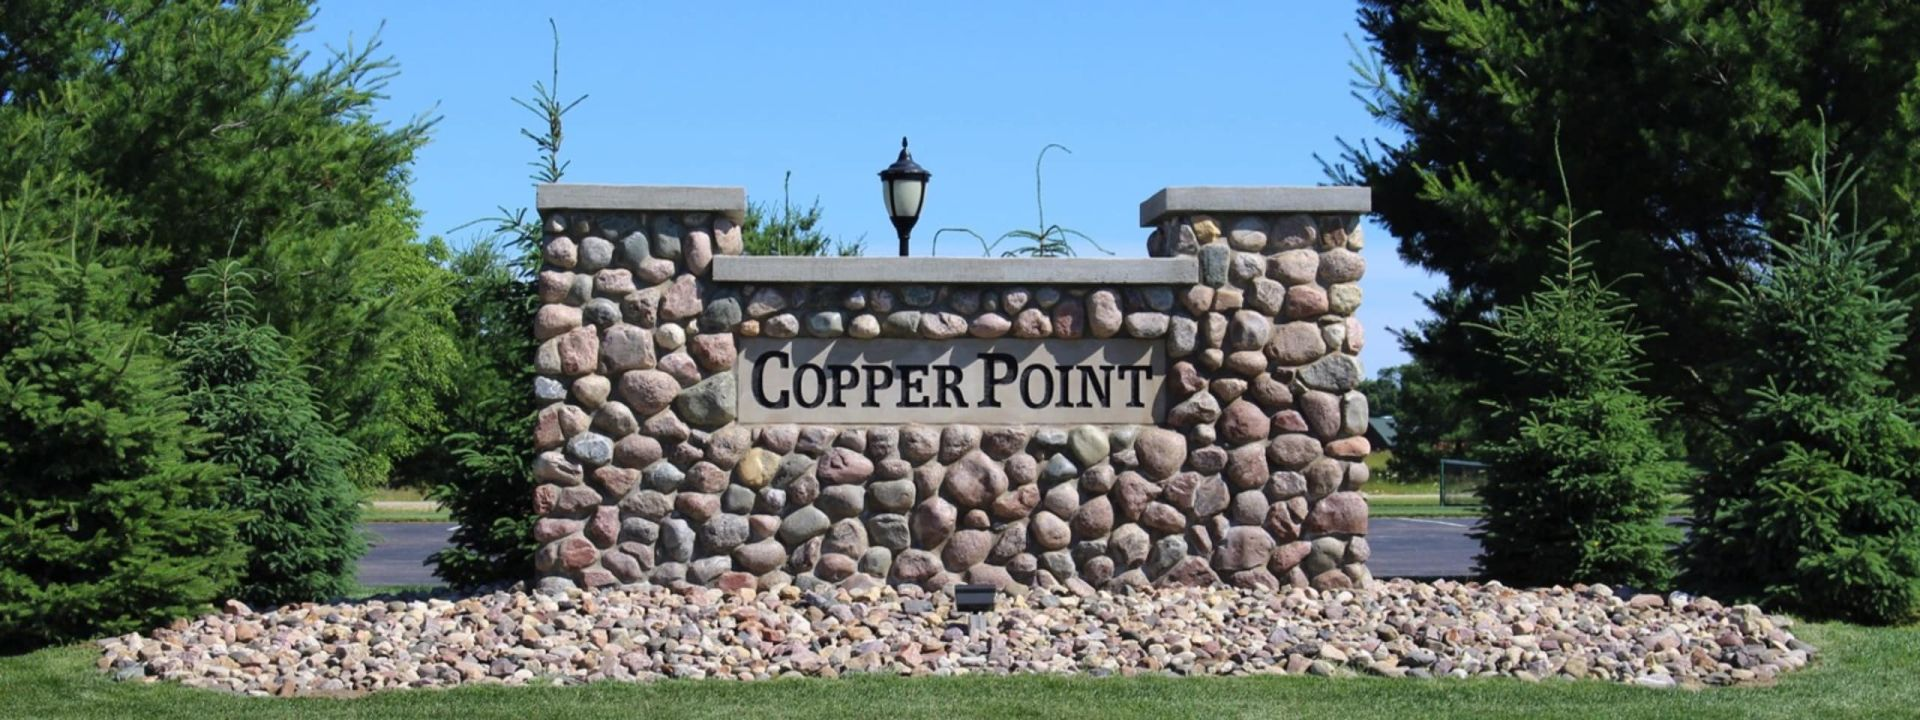 Copper Point